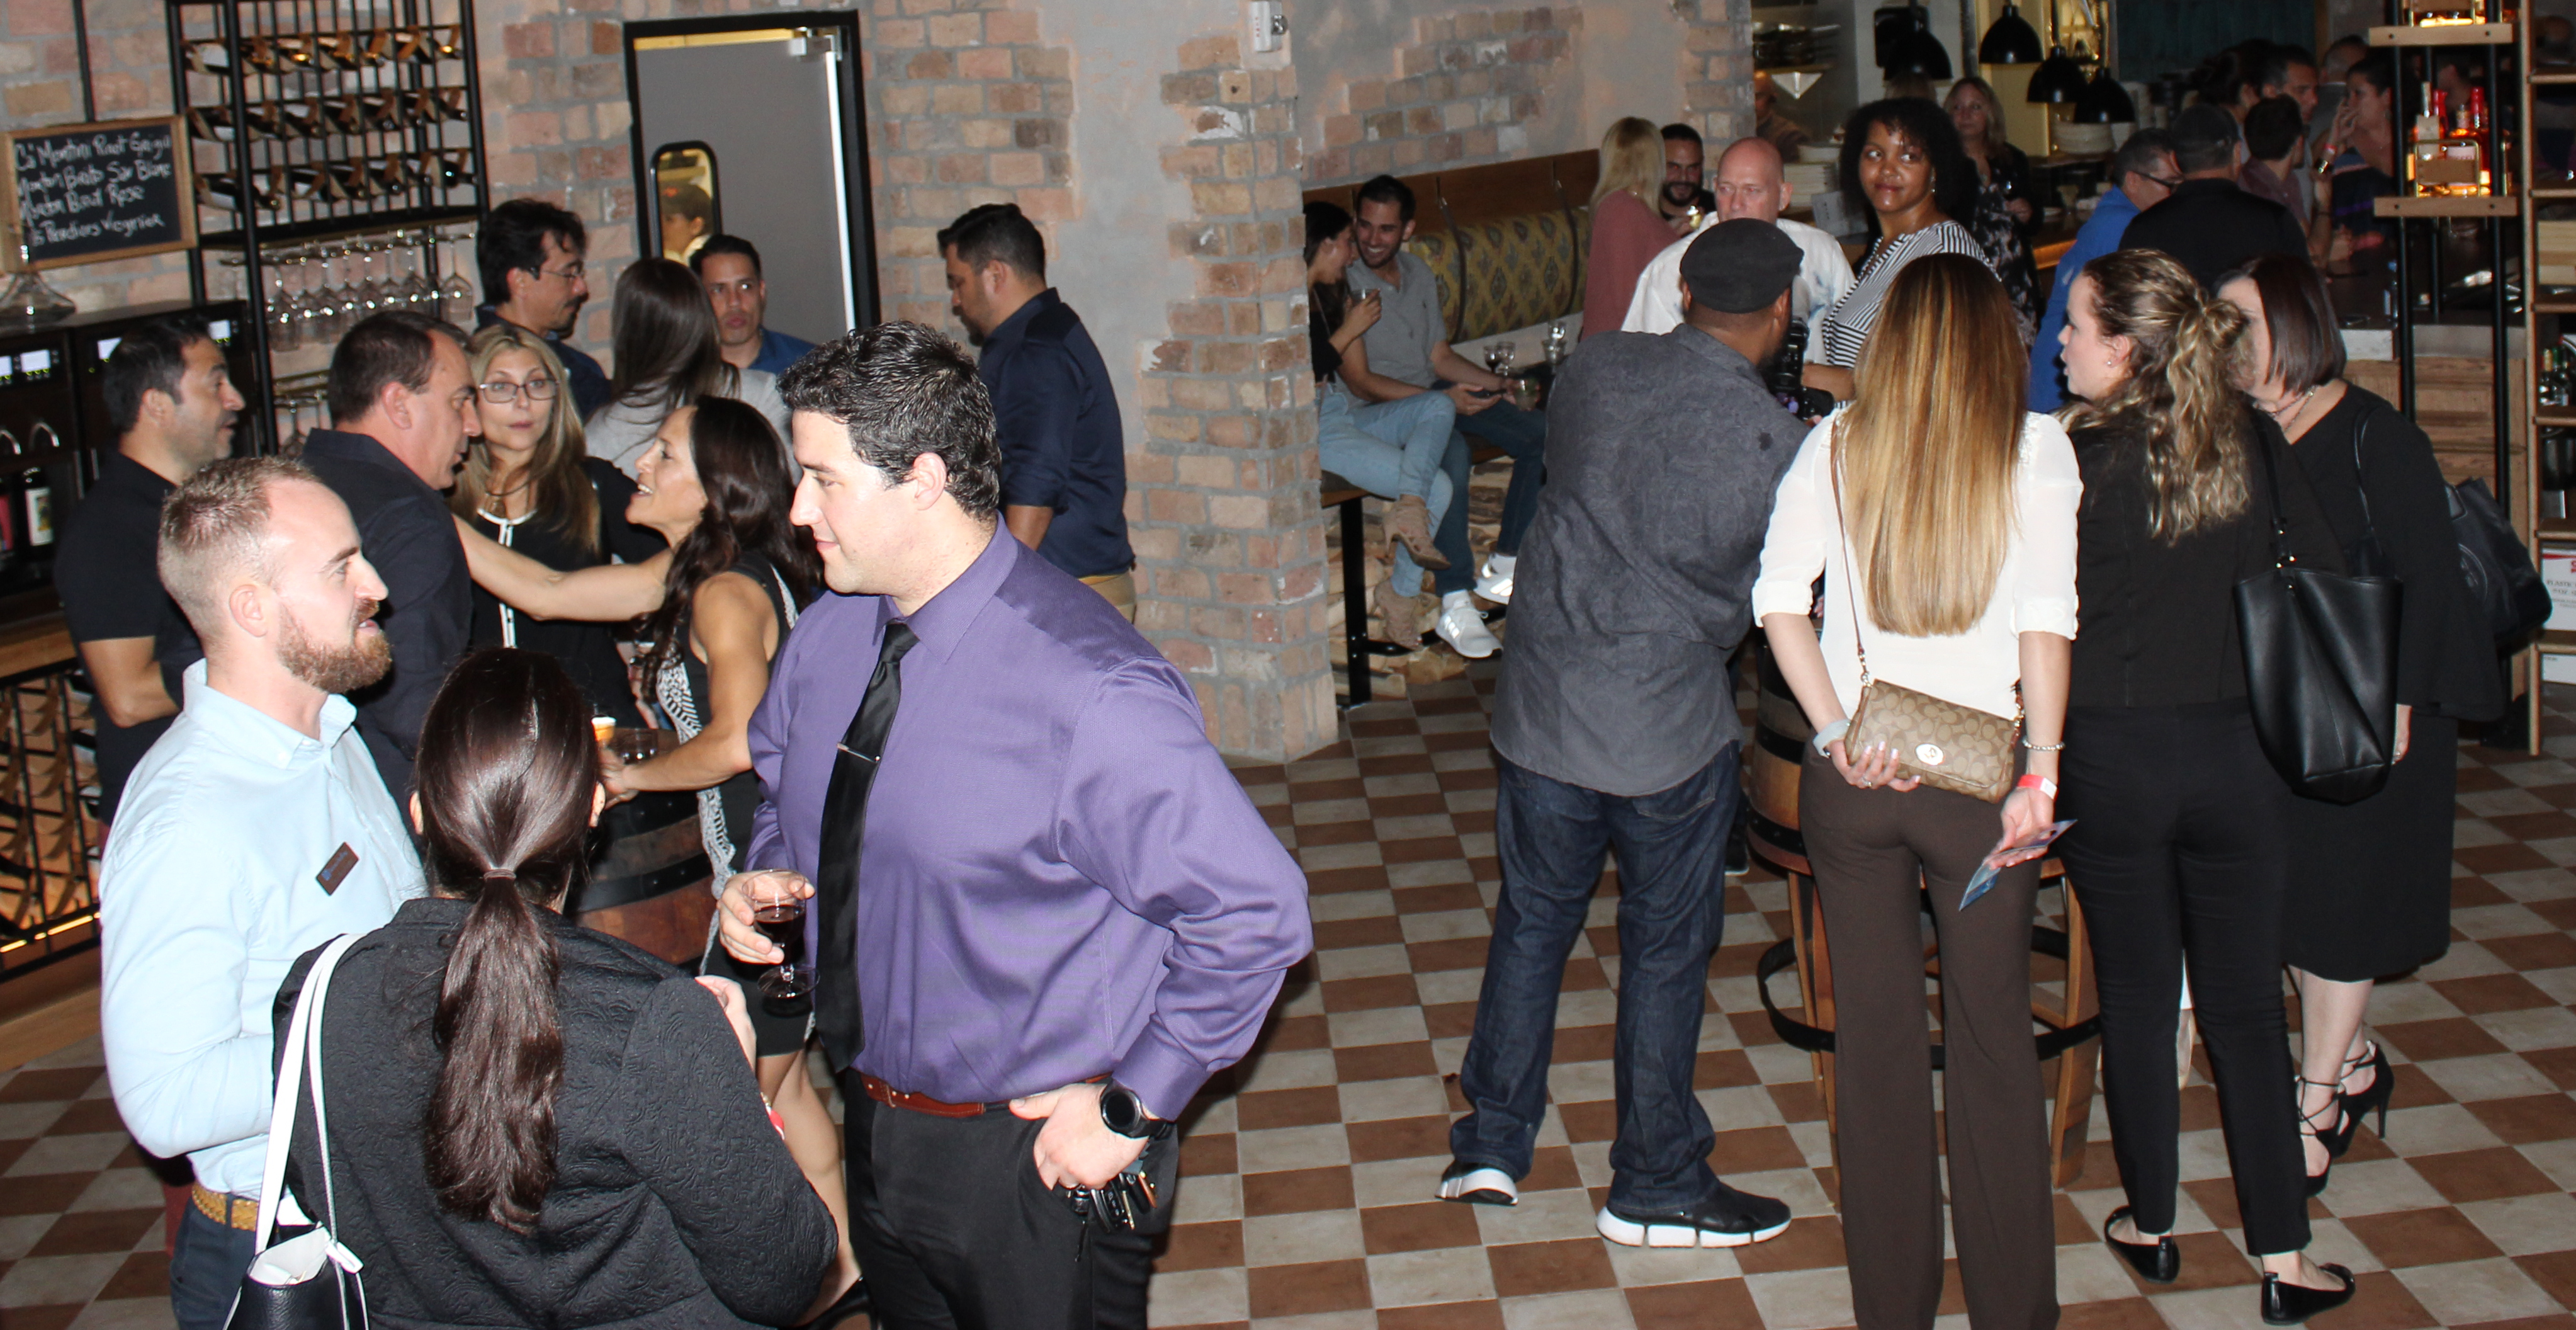 Doral Chamber of Commerce introduces Novecento Grand Opening, groups of people talking and having fun.